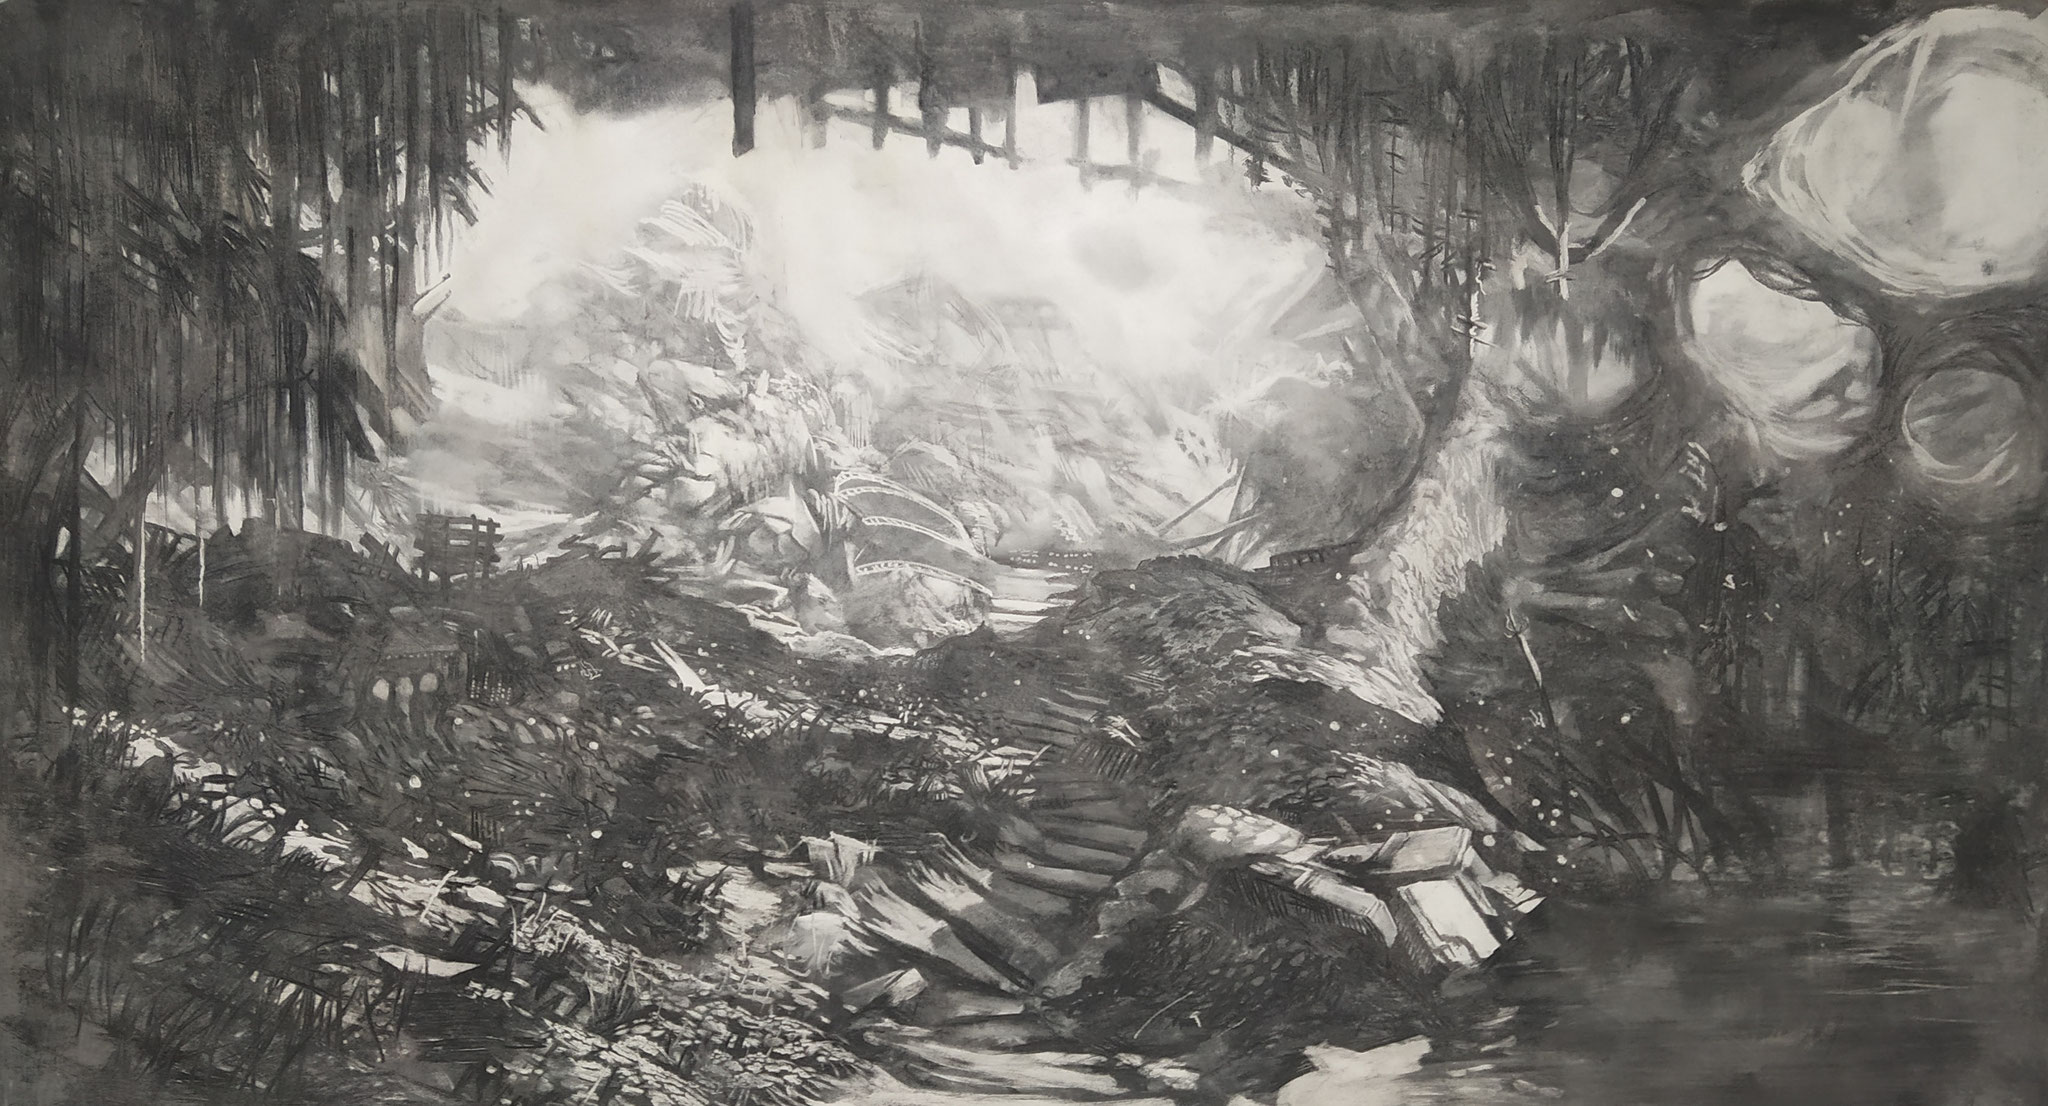 2019 - The Cave - Charcoal on MDF board - 170 x 90 cm - AVAILABLE